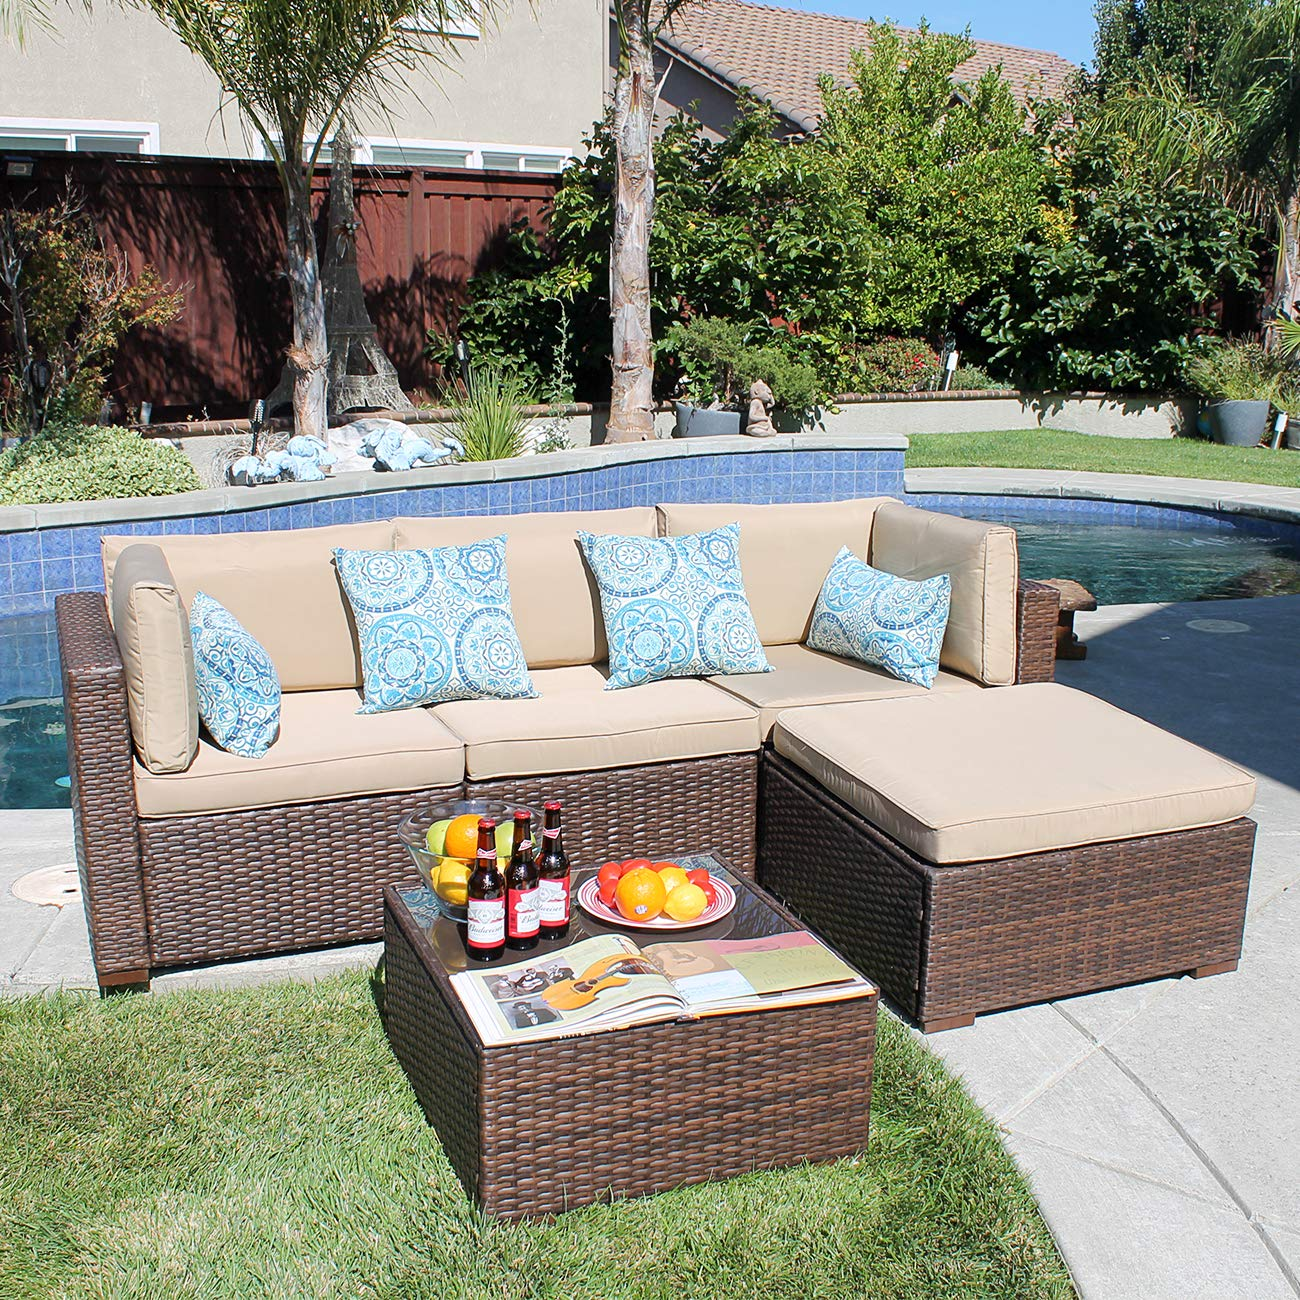 Patiorama 5PC Outdoor Patio Furniture Set All Weather Wicker Patio Sectional Sofa Set with Corner Sofa Chair Ottoman Table, Beige by Patiorama